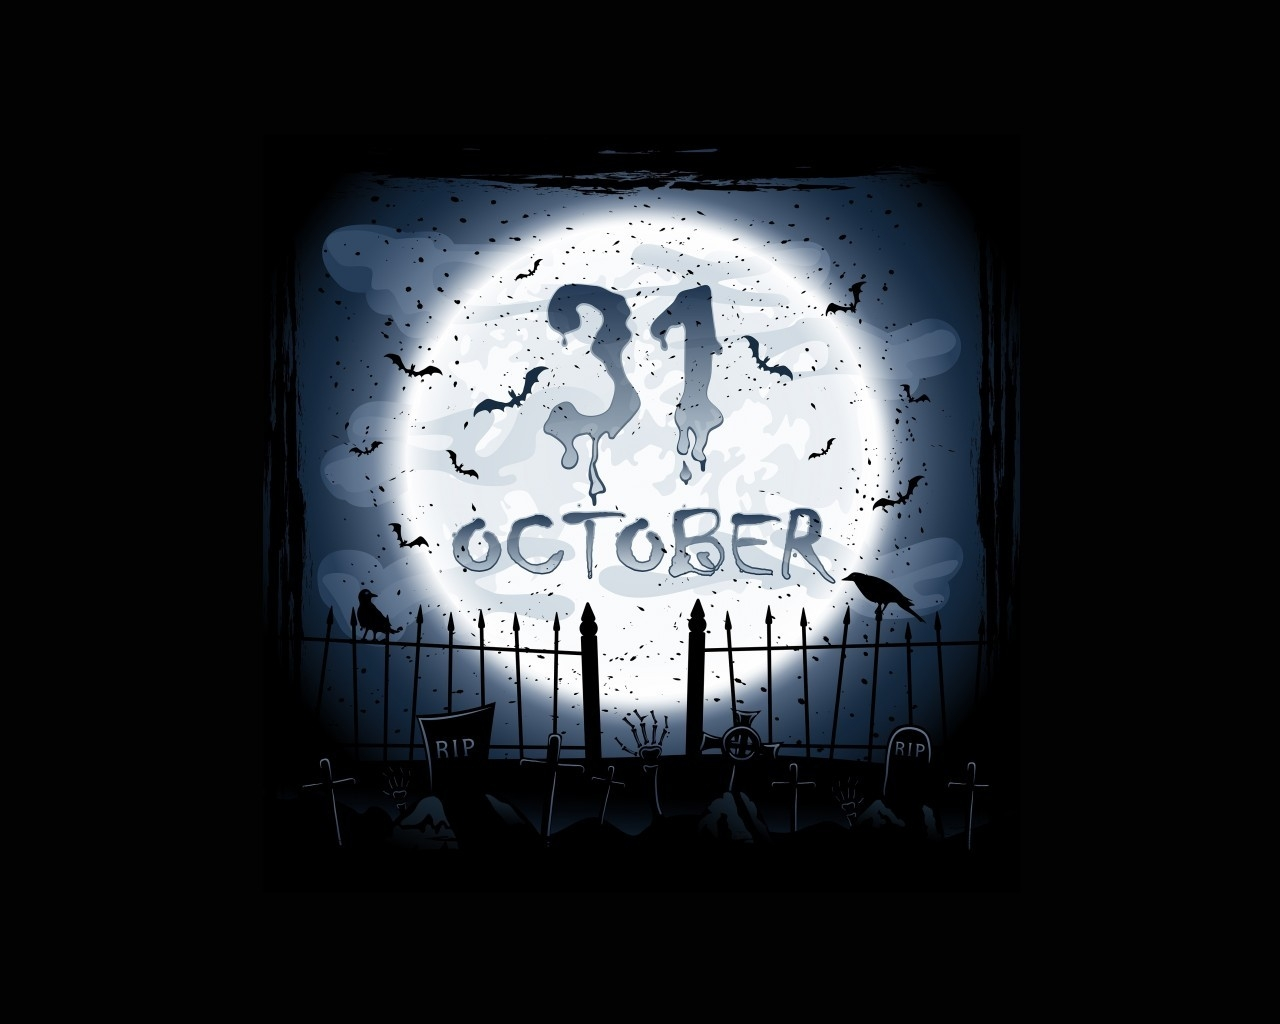 31 October for 1280 x 1024 resolution